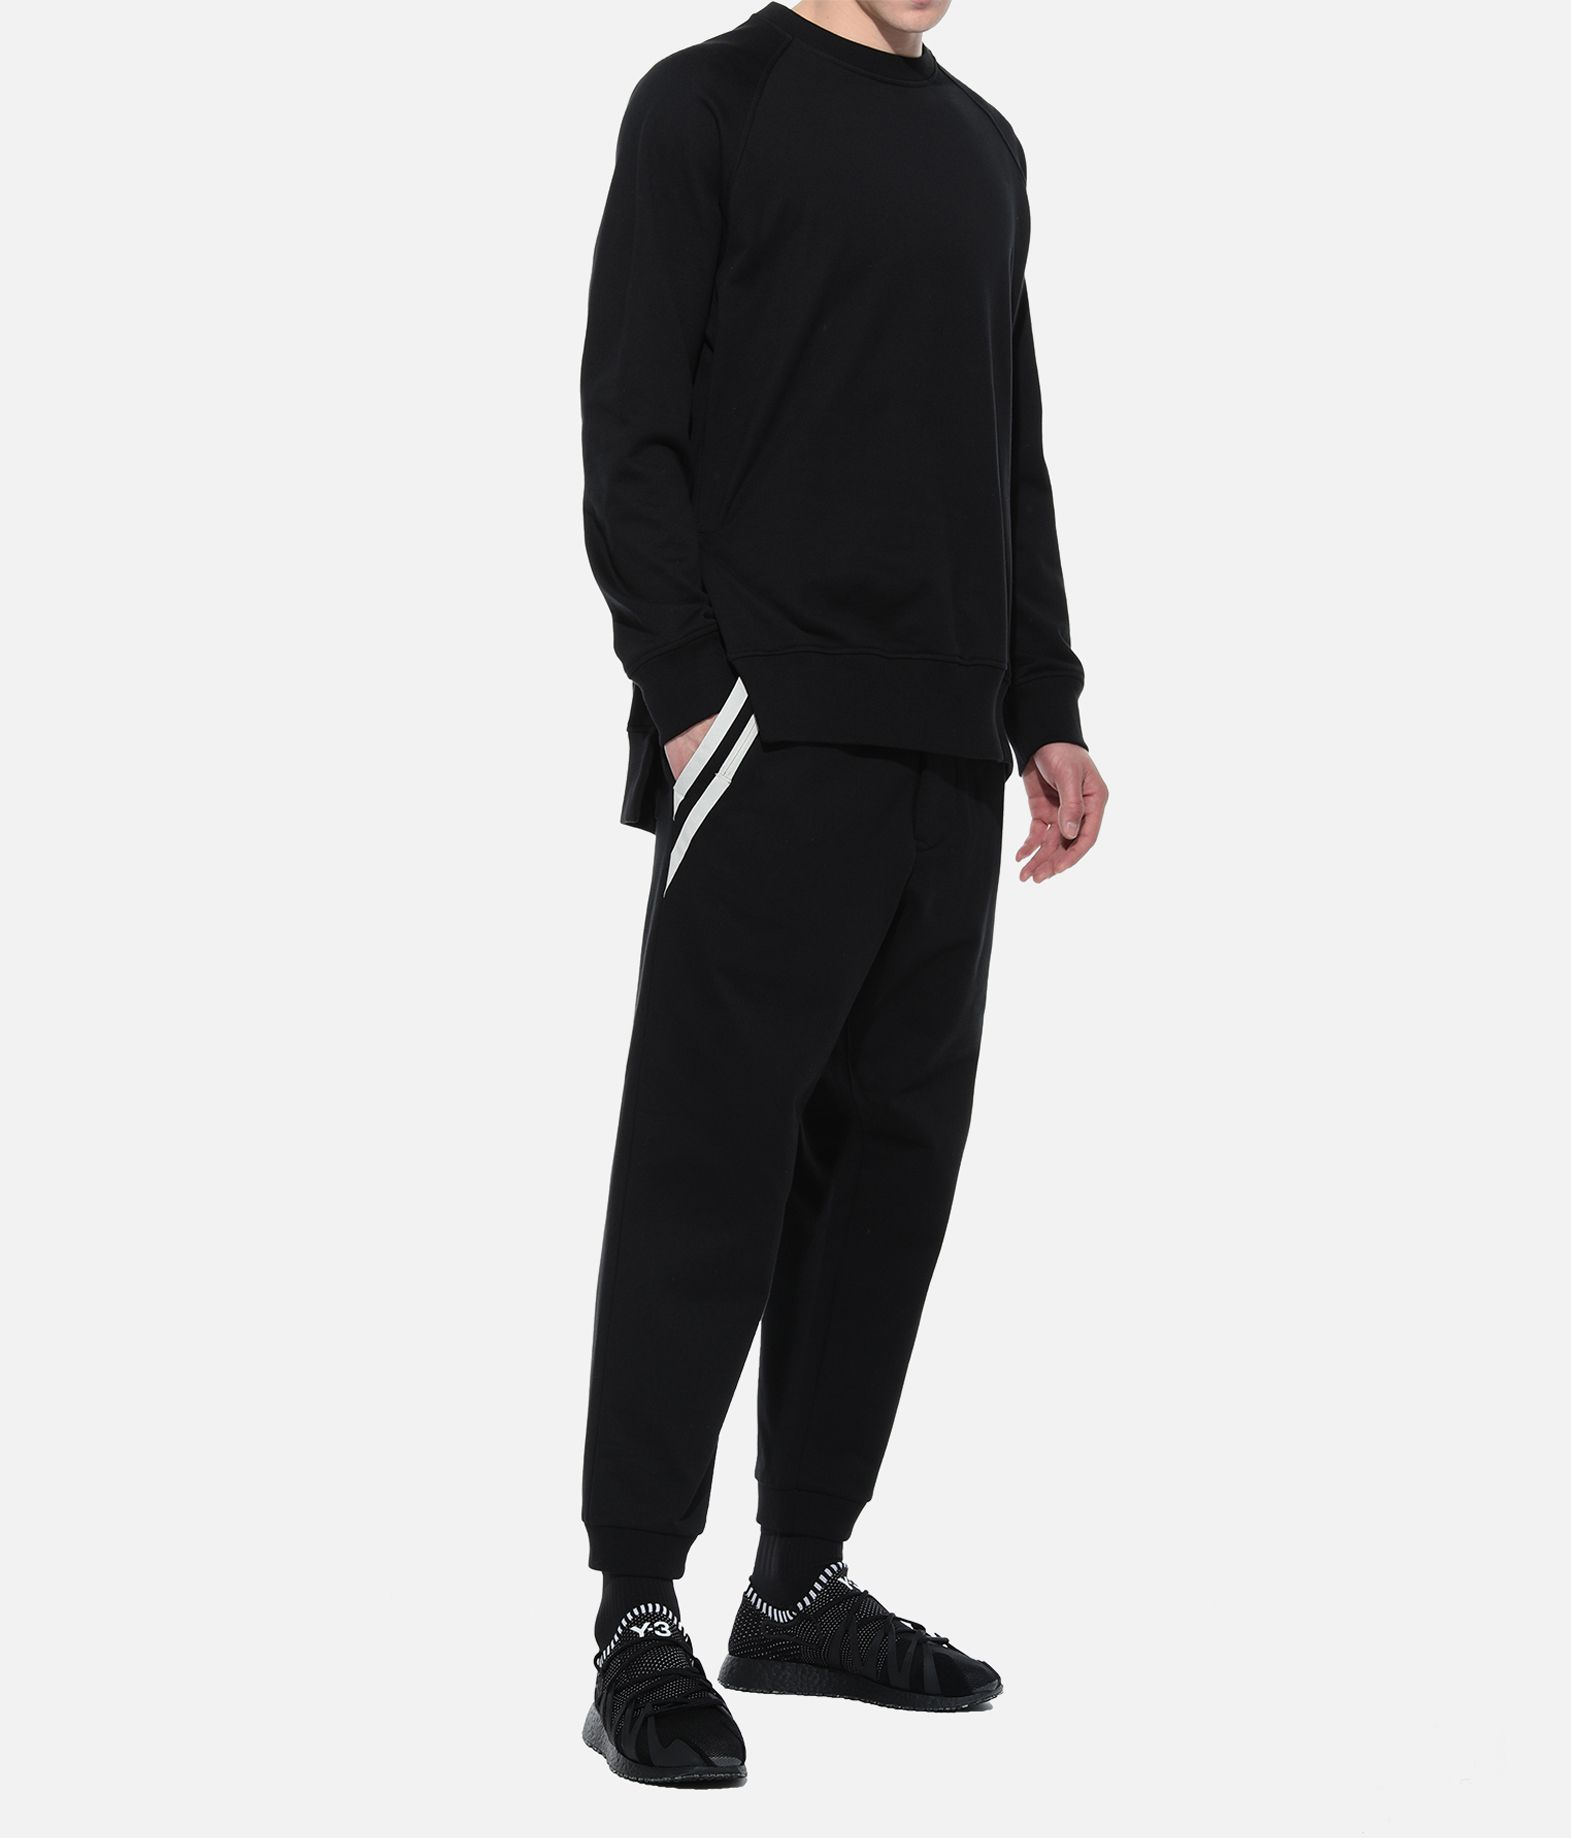 Y-3 Y-3 3-Stripes Cuff Pants Casual pants Man a